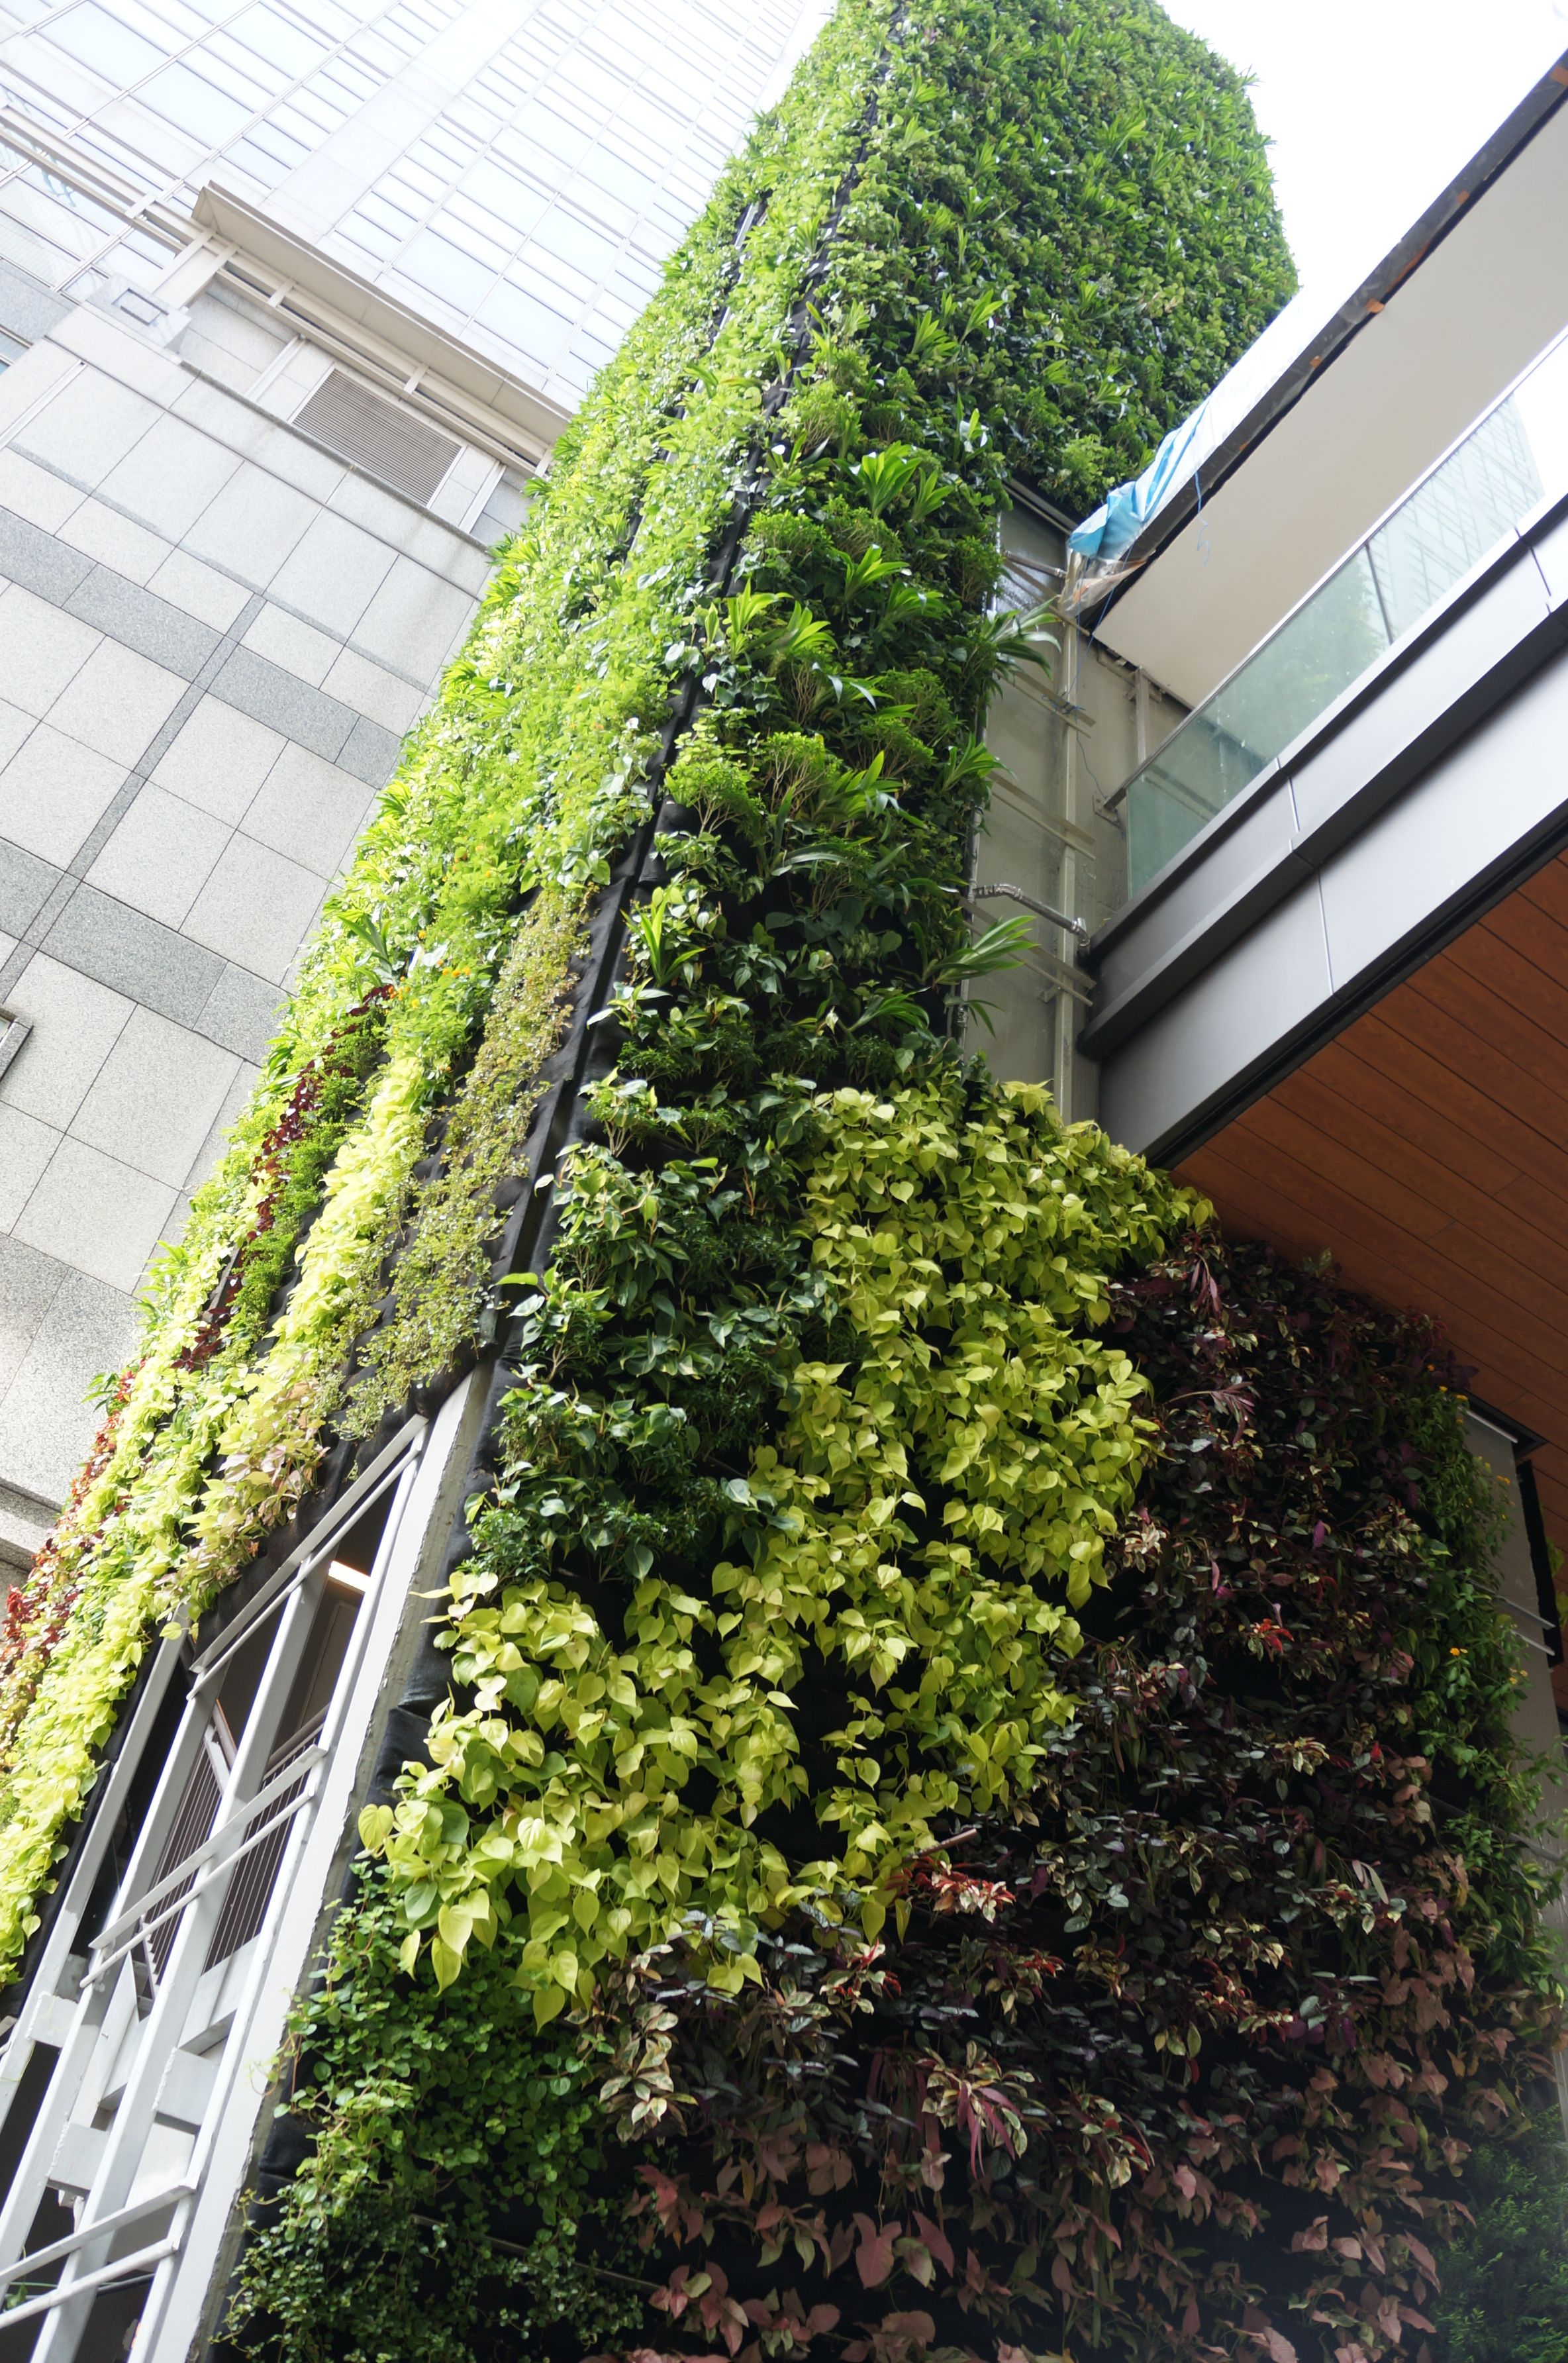 450m2 30m high GVG Greenwall installed in 7 days. (avec